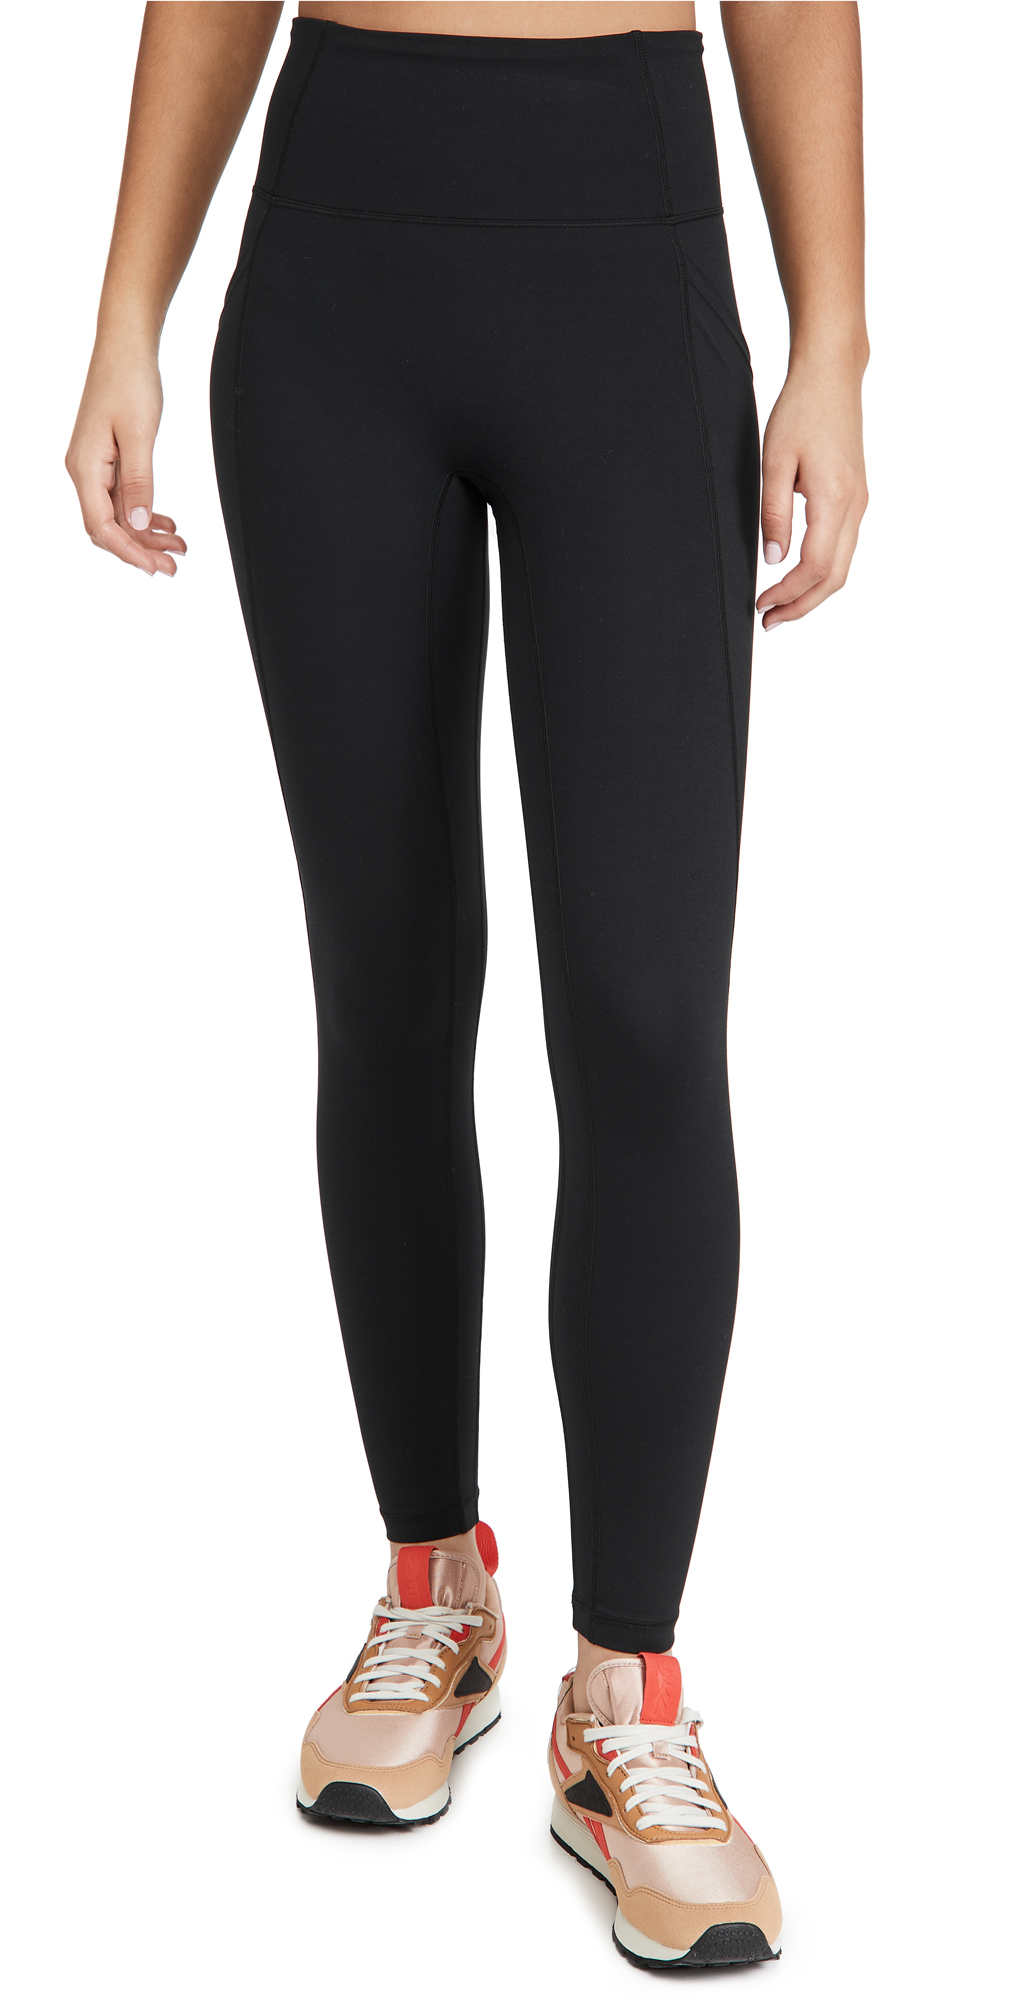 All Access Ultra High Rise Utility Pocket Leggings